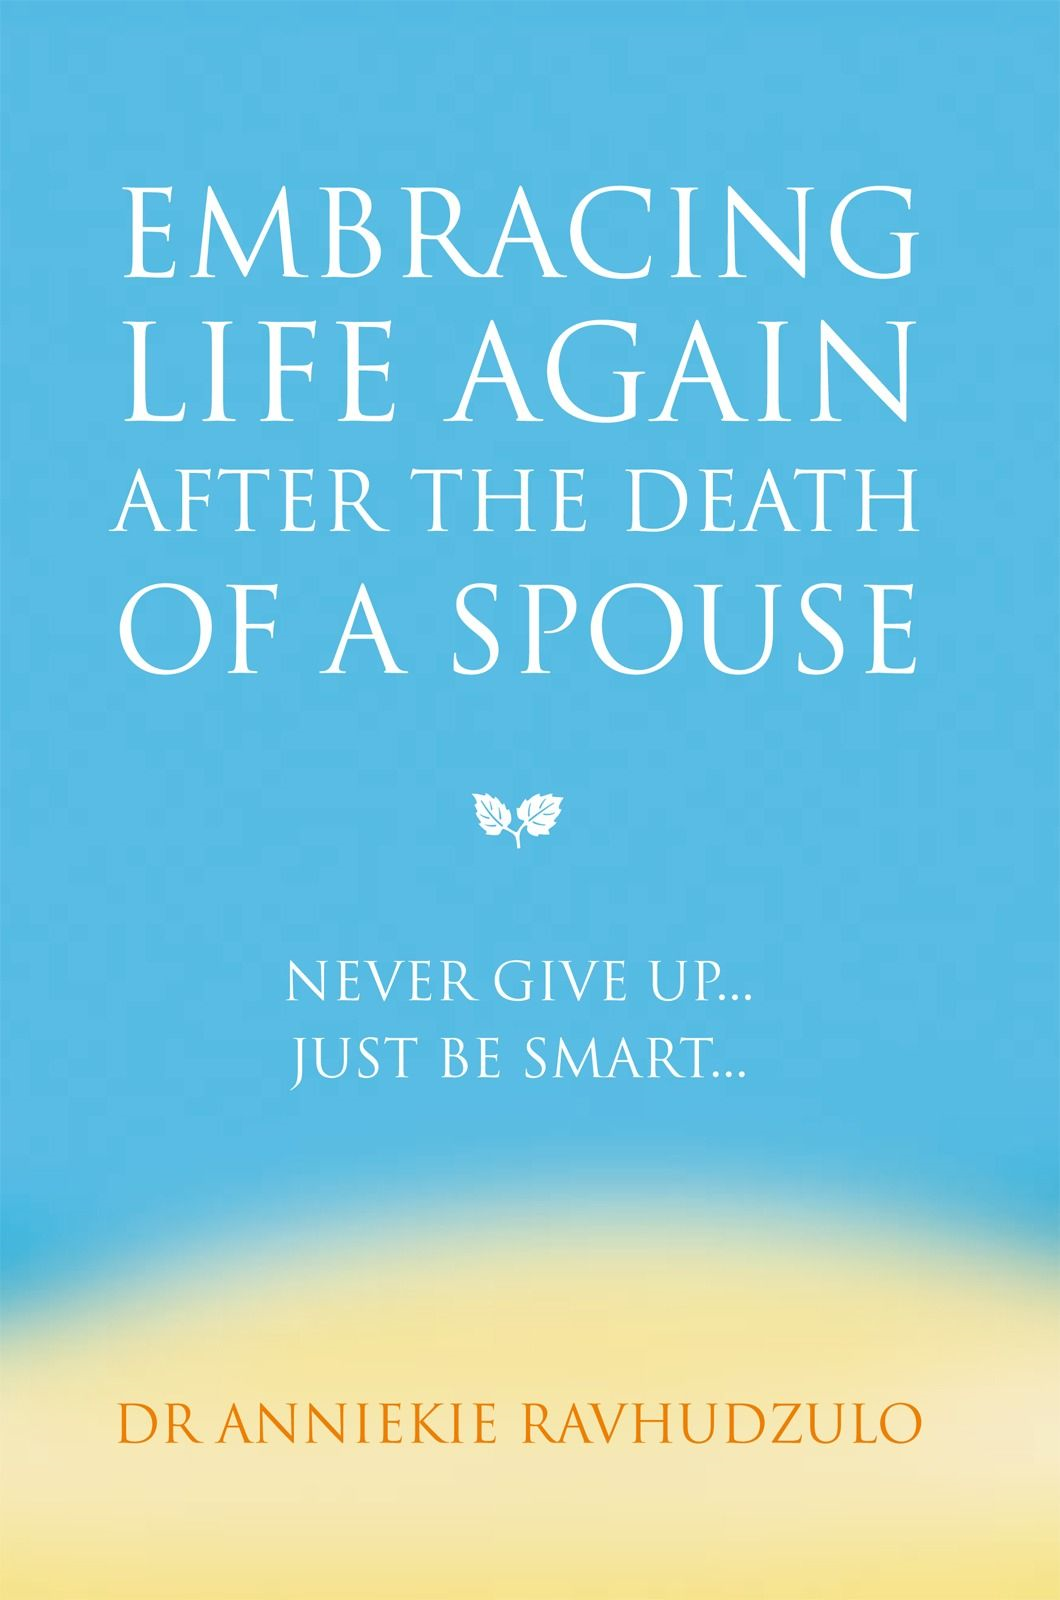 Embracing Life Again After the Death of a Spouse